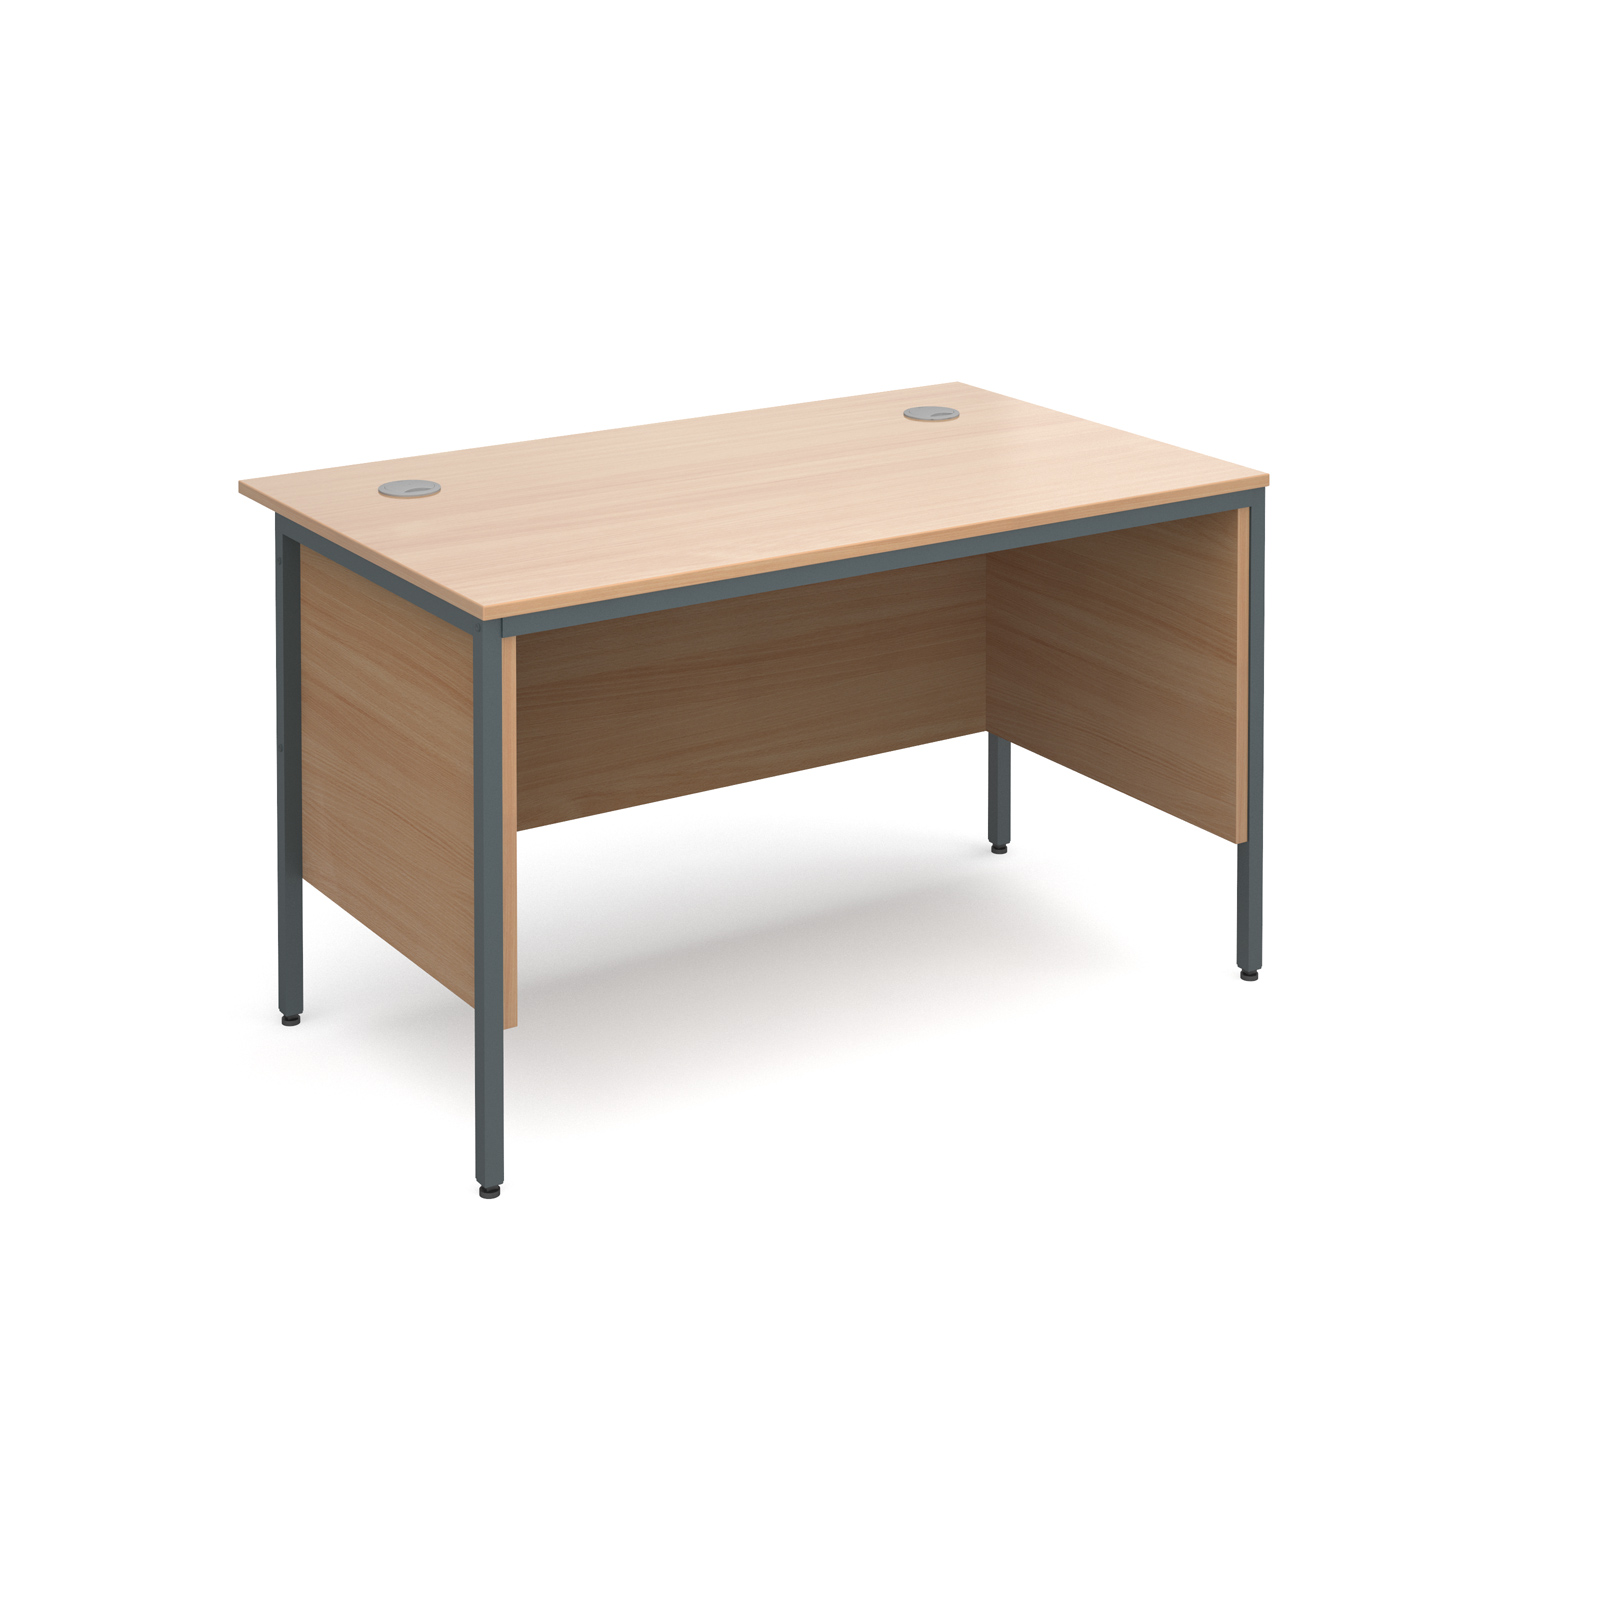 Maestro H frame straight desk with side panels 1228mm - beech